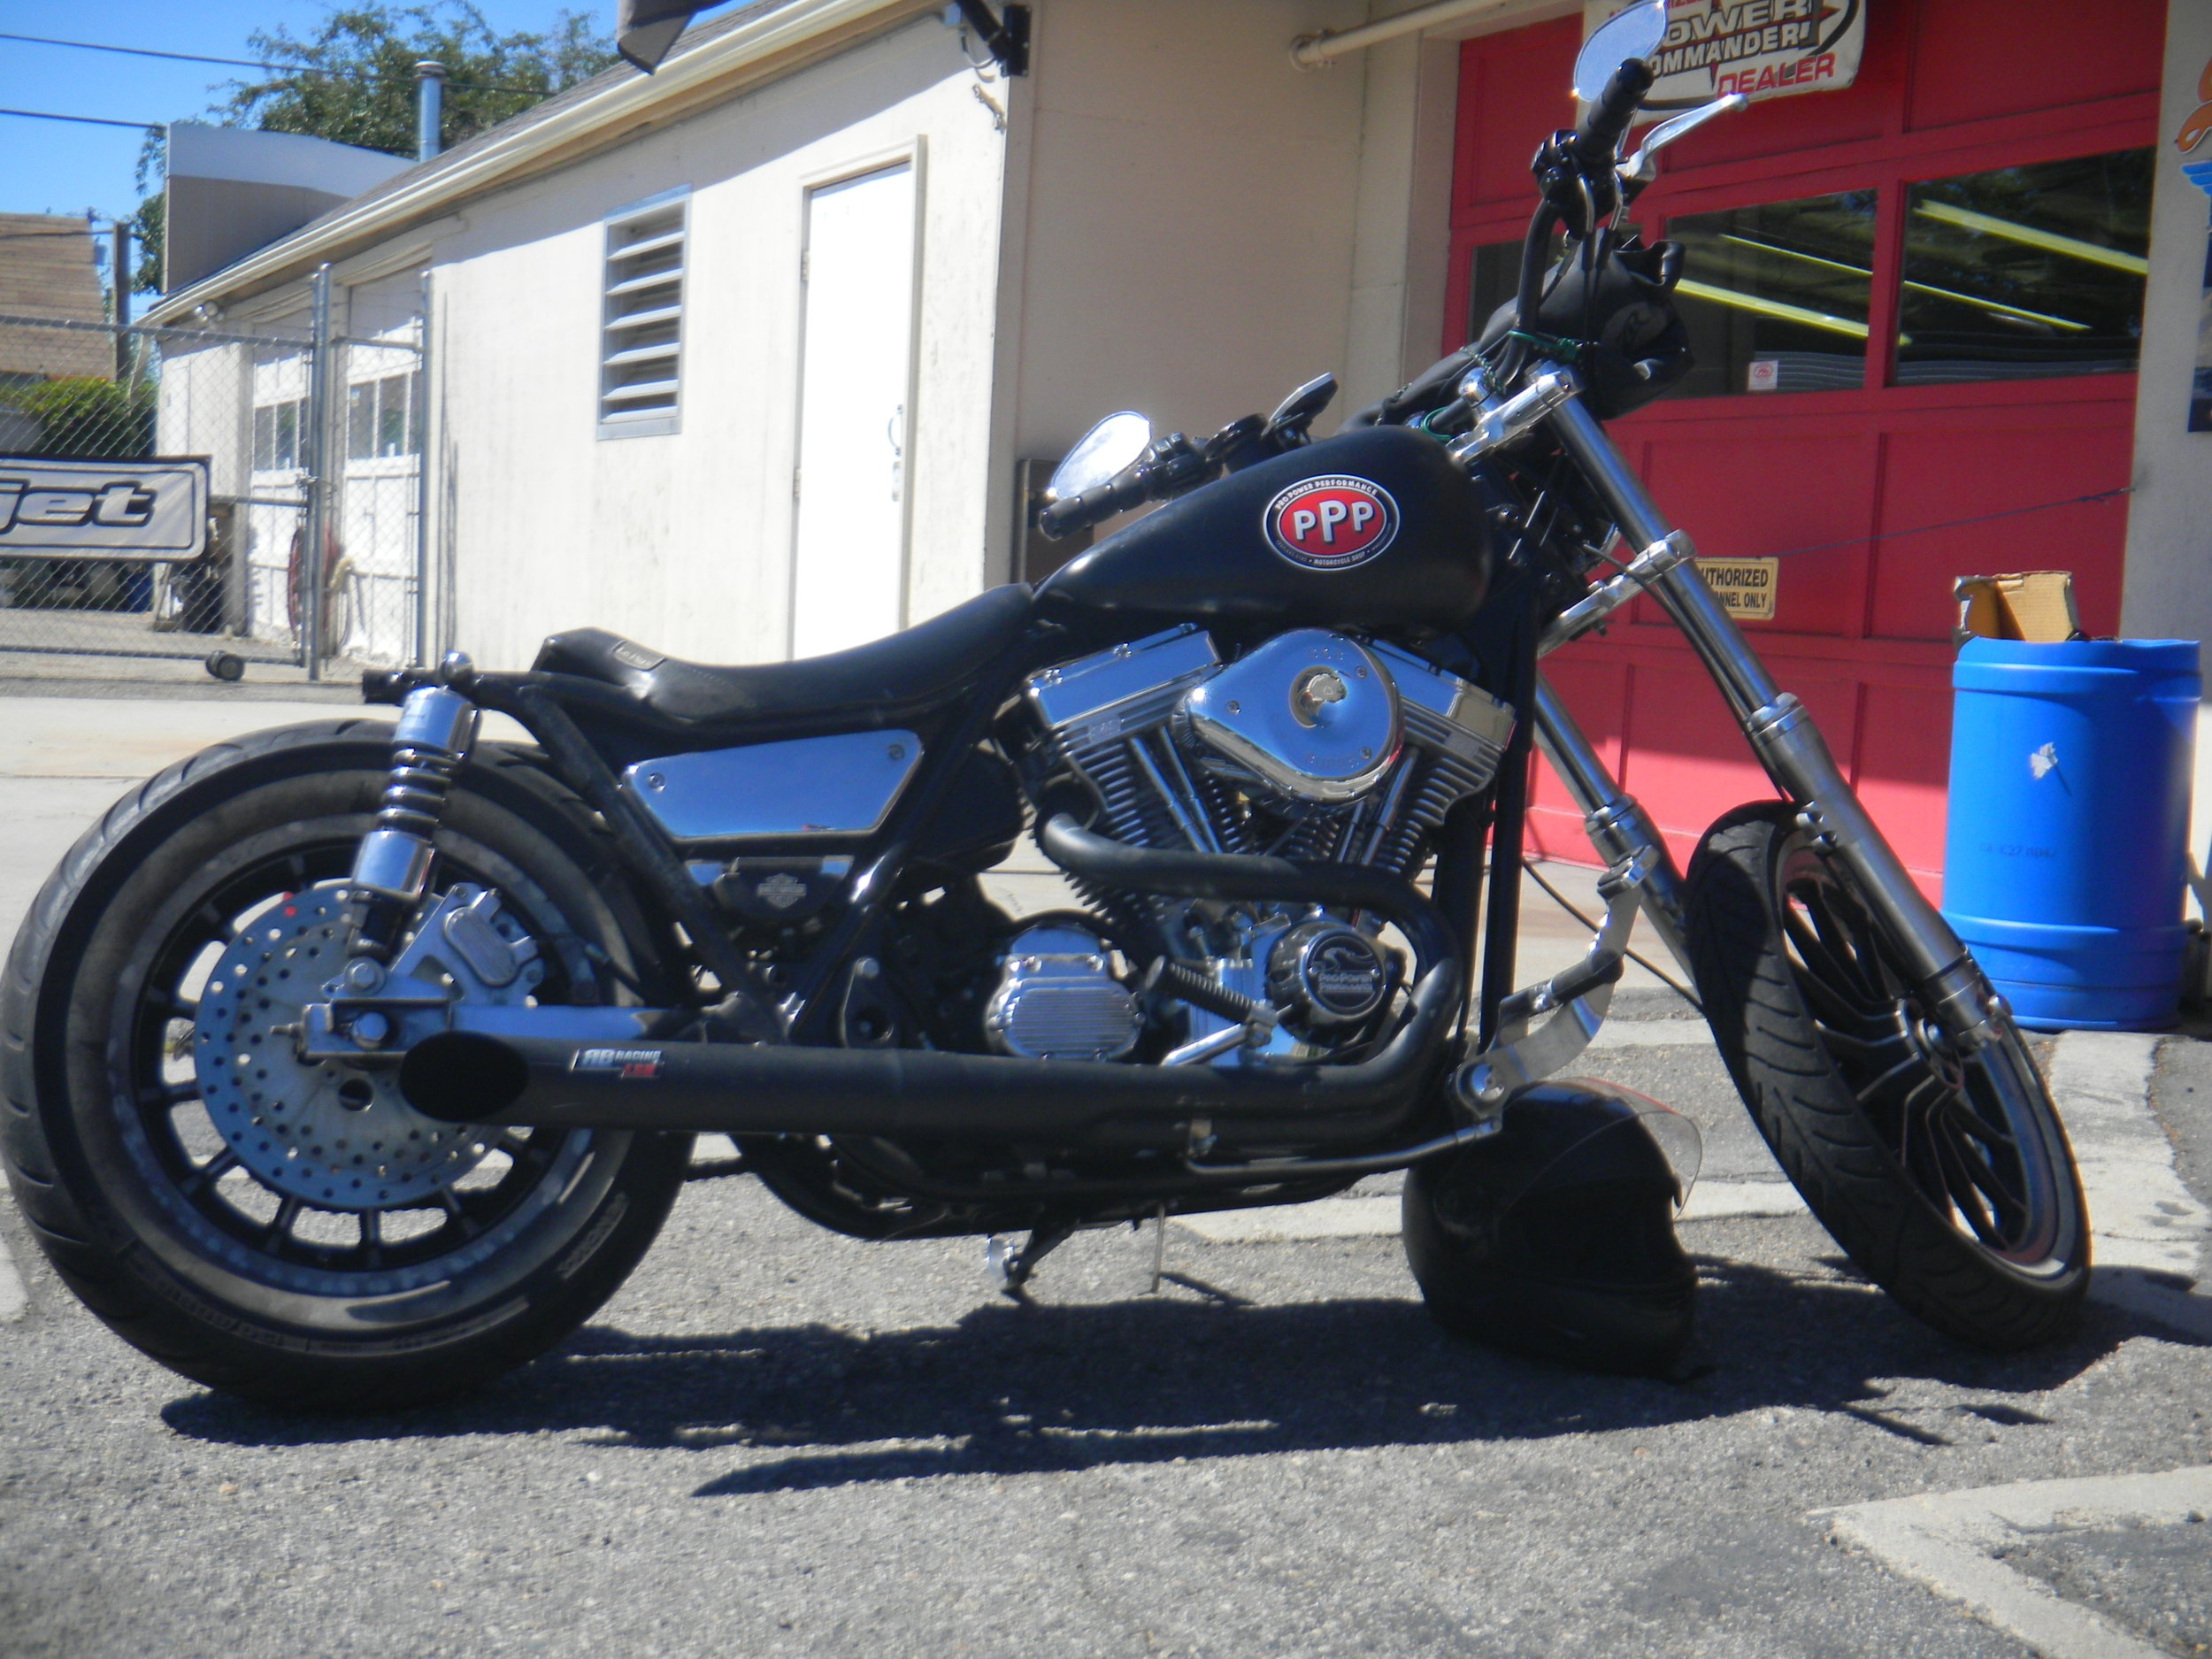 SEAN'S 1986 HARLEY FXR WITH AN SS 124 MOTOR